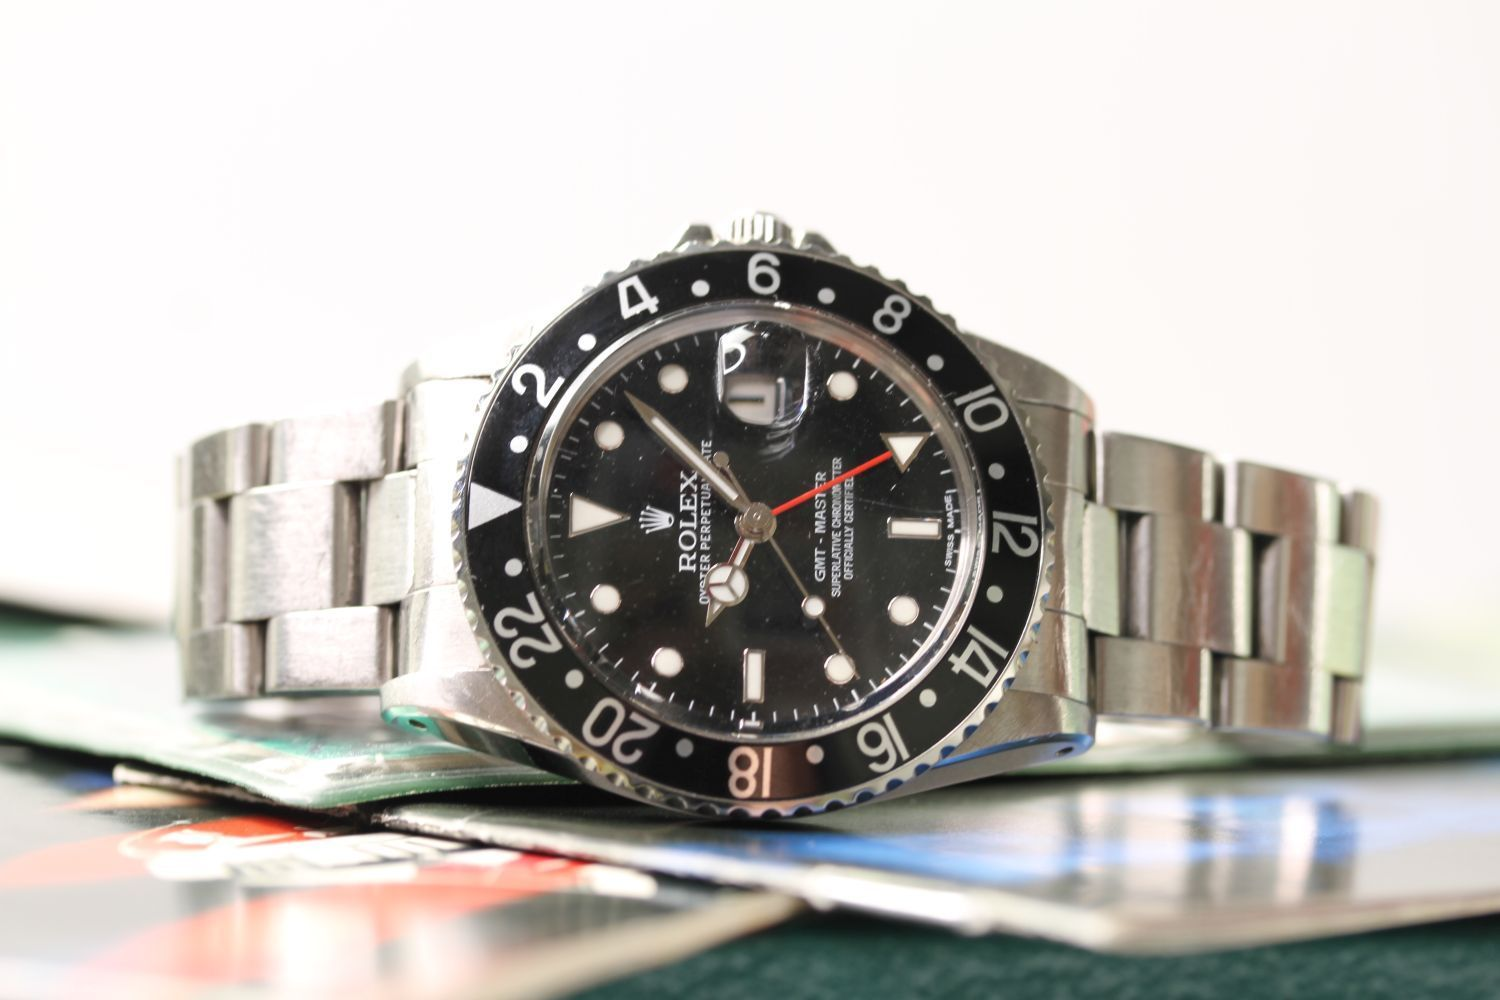 VINTAGE ROLEX GMT MASTER REFERENCE 16750 WITH BOX AND ROLEX SERVICE CARD, circular black dial with - Image 2 of 4